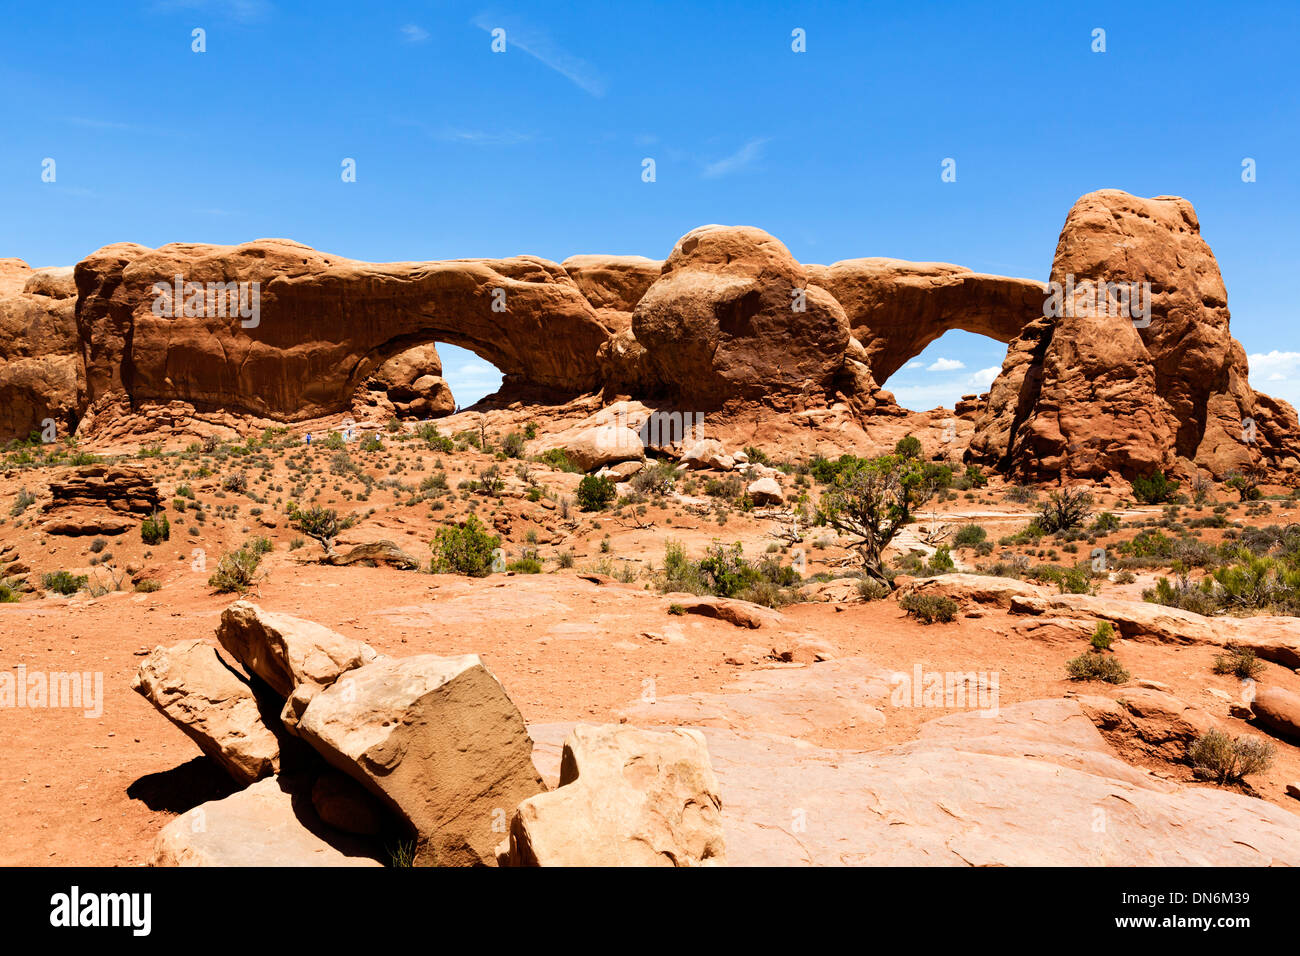 North and South Windows arches, The Windows Section, Arches National Park, Utah, USA - Stock Image